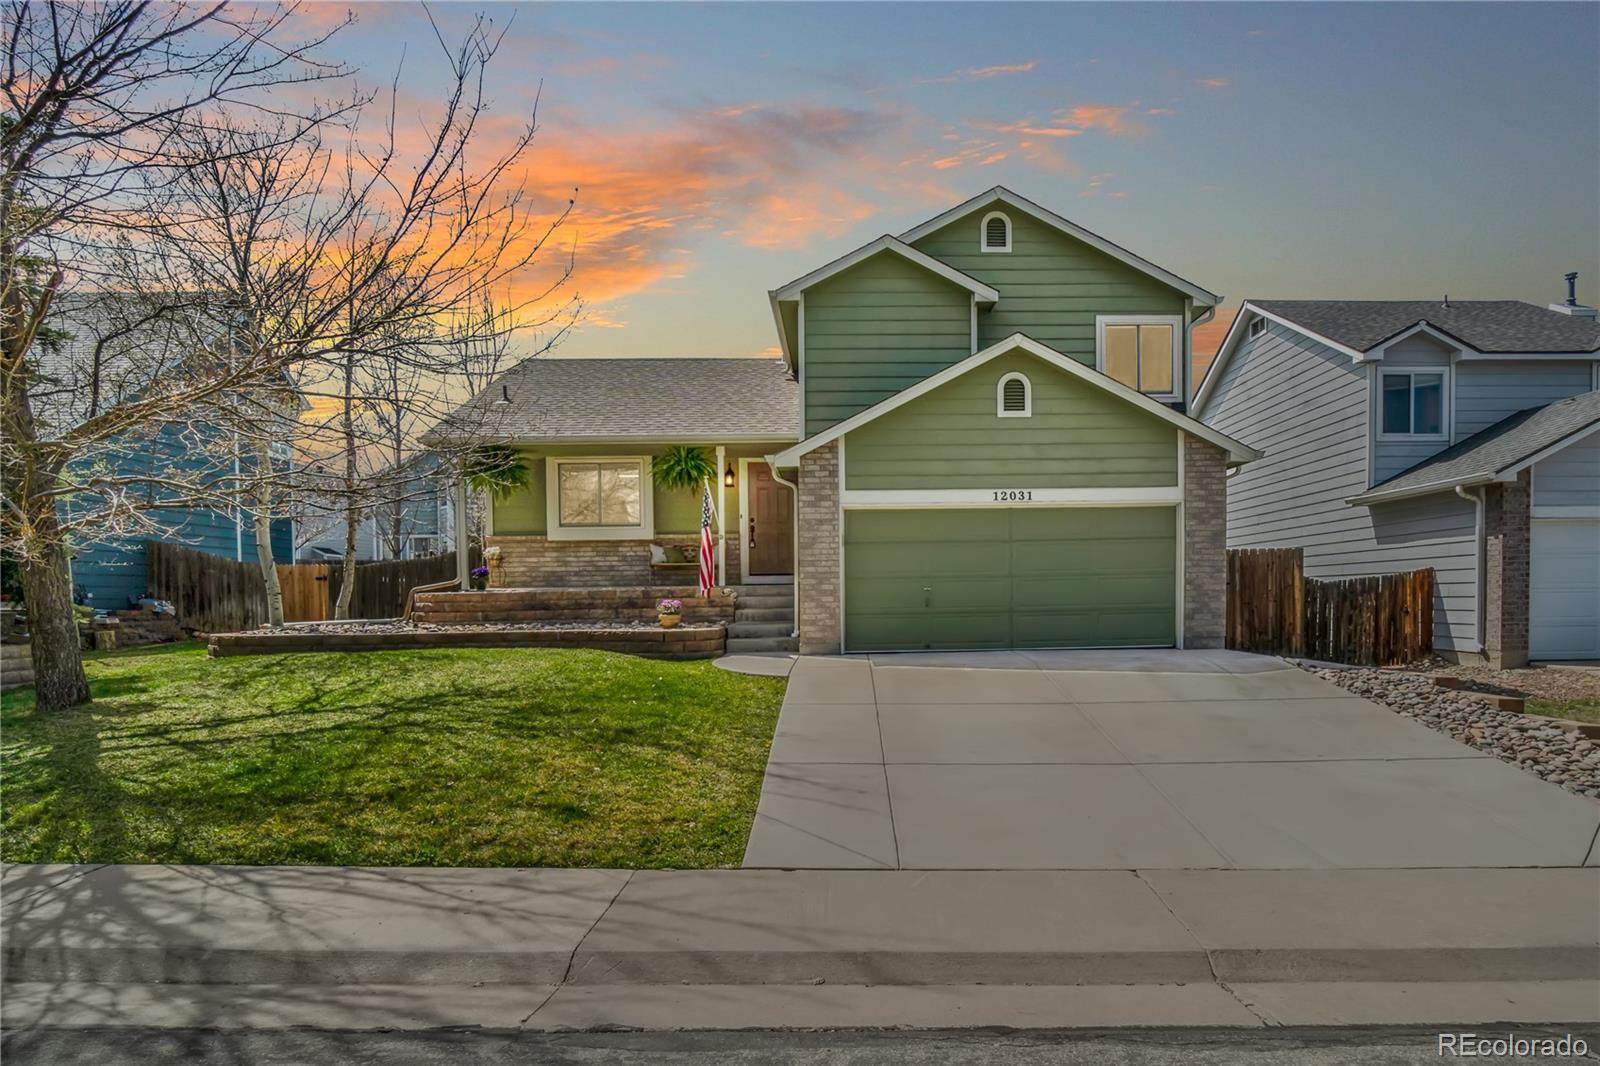 12031 Forest Way, Thornton, CO 80241 - Thornton, CO real estate listing